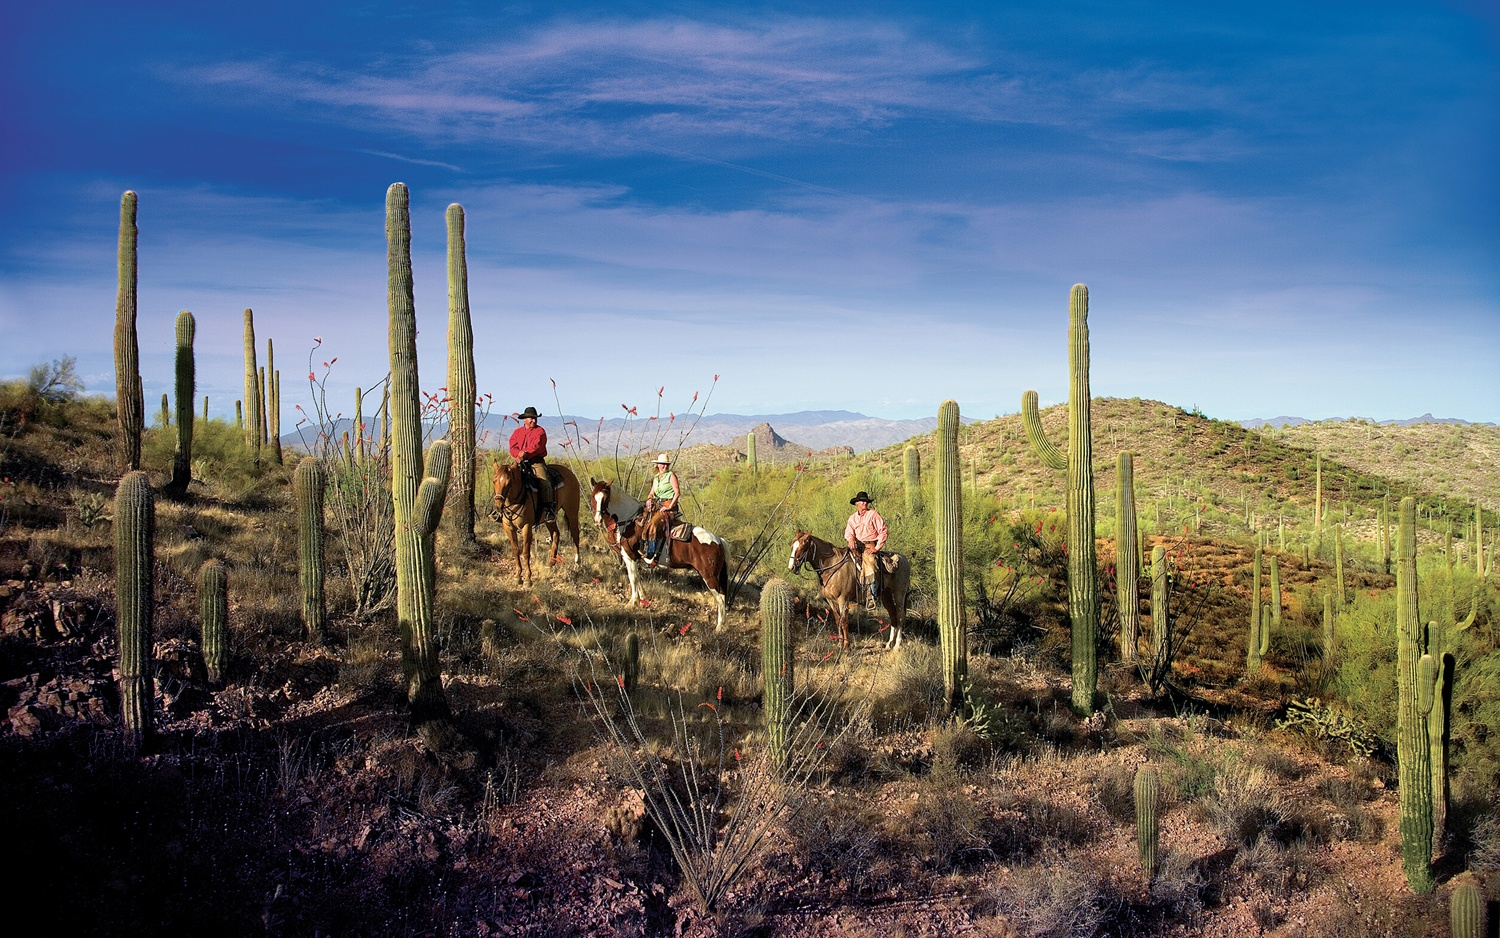 horseback riding in the desert in Rancho de los Caballeros, AZ